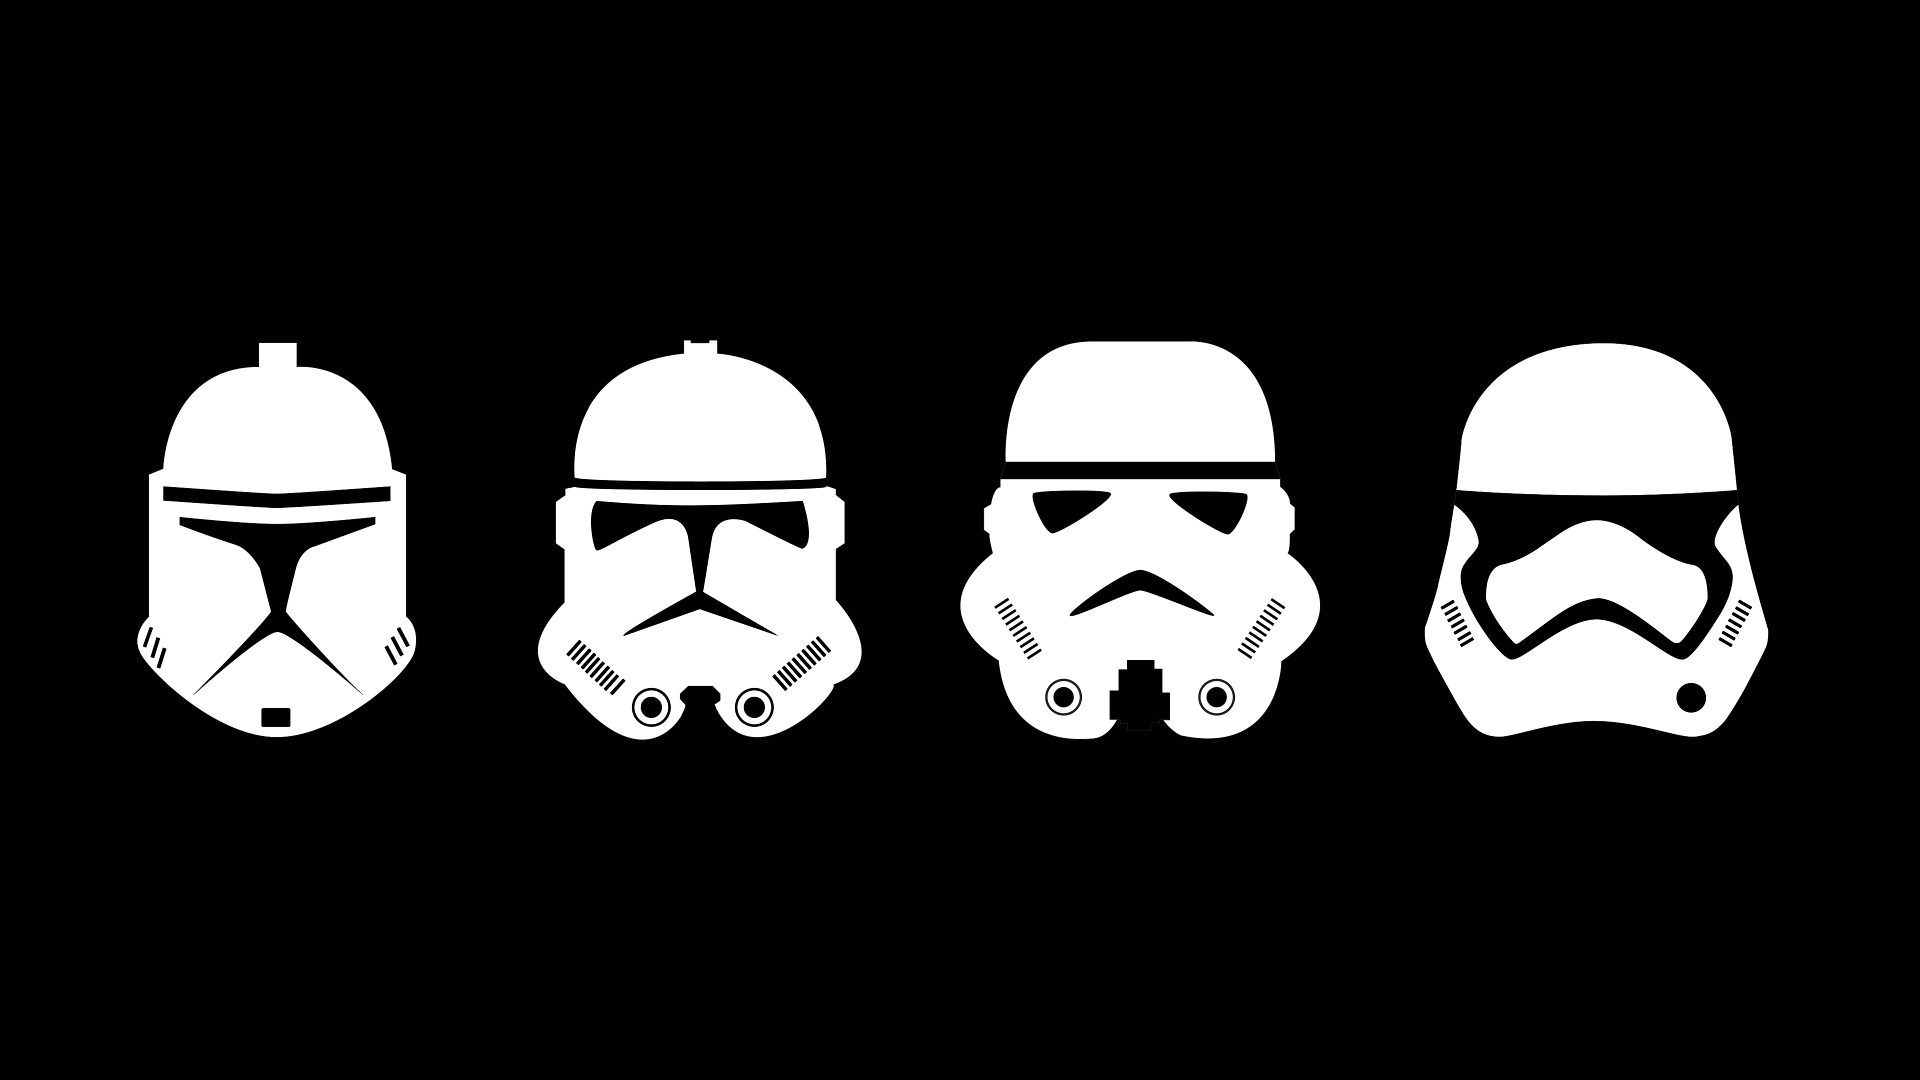 70 Star Wars Wallpapers - (1920x1080) Need #iPhone #6S #Plus #